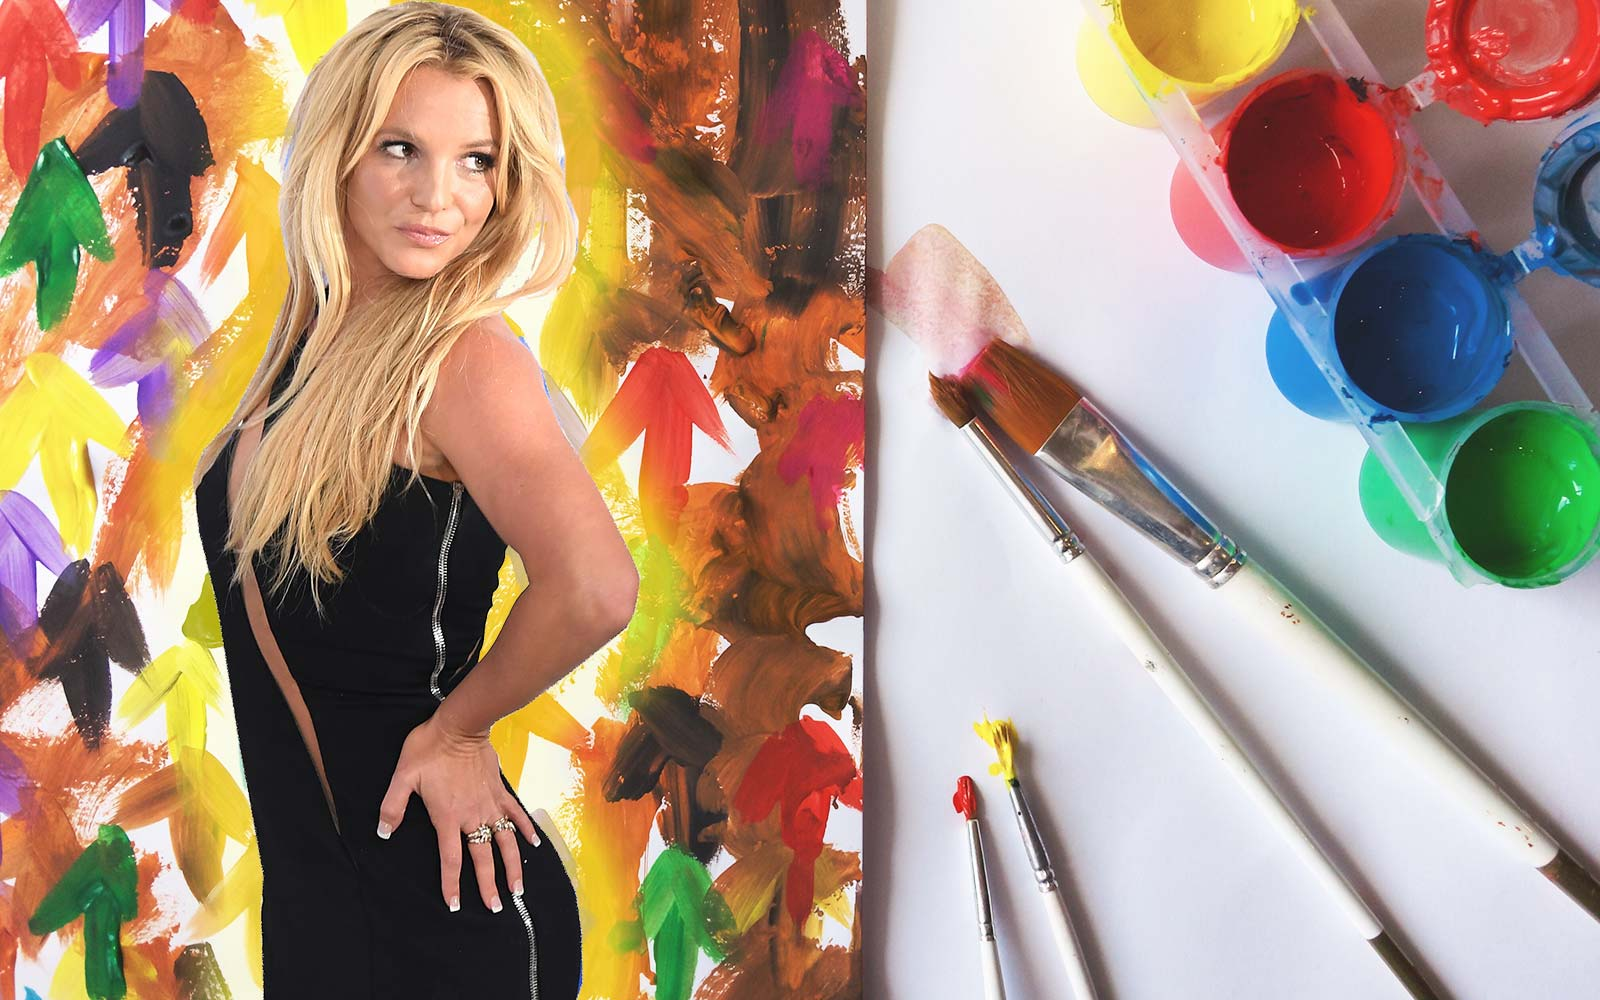 Britney Spears Just Sold One of Her Paintings for $10,000